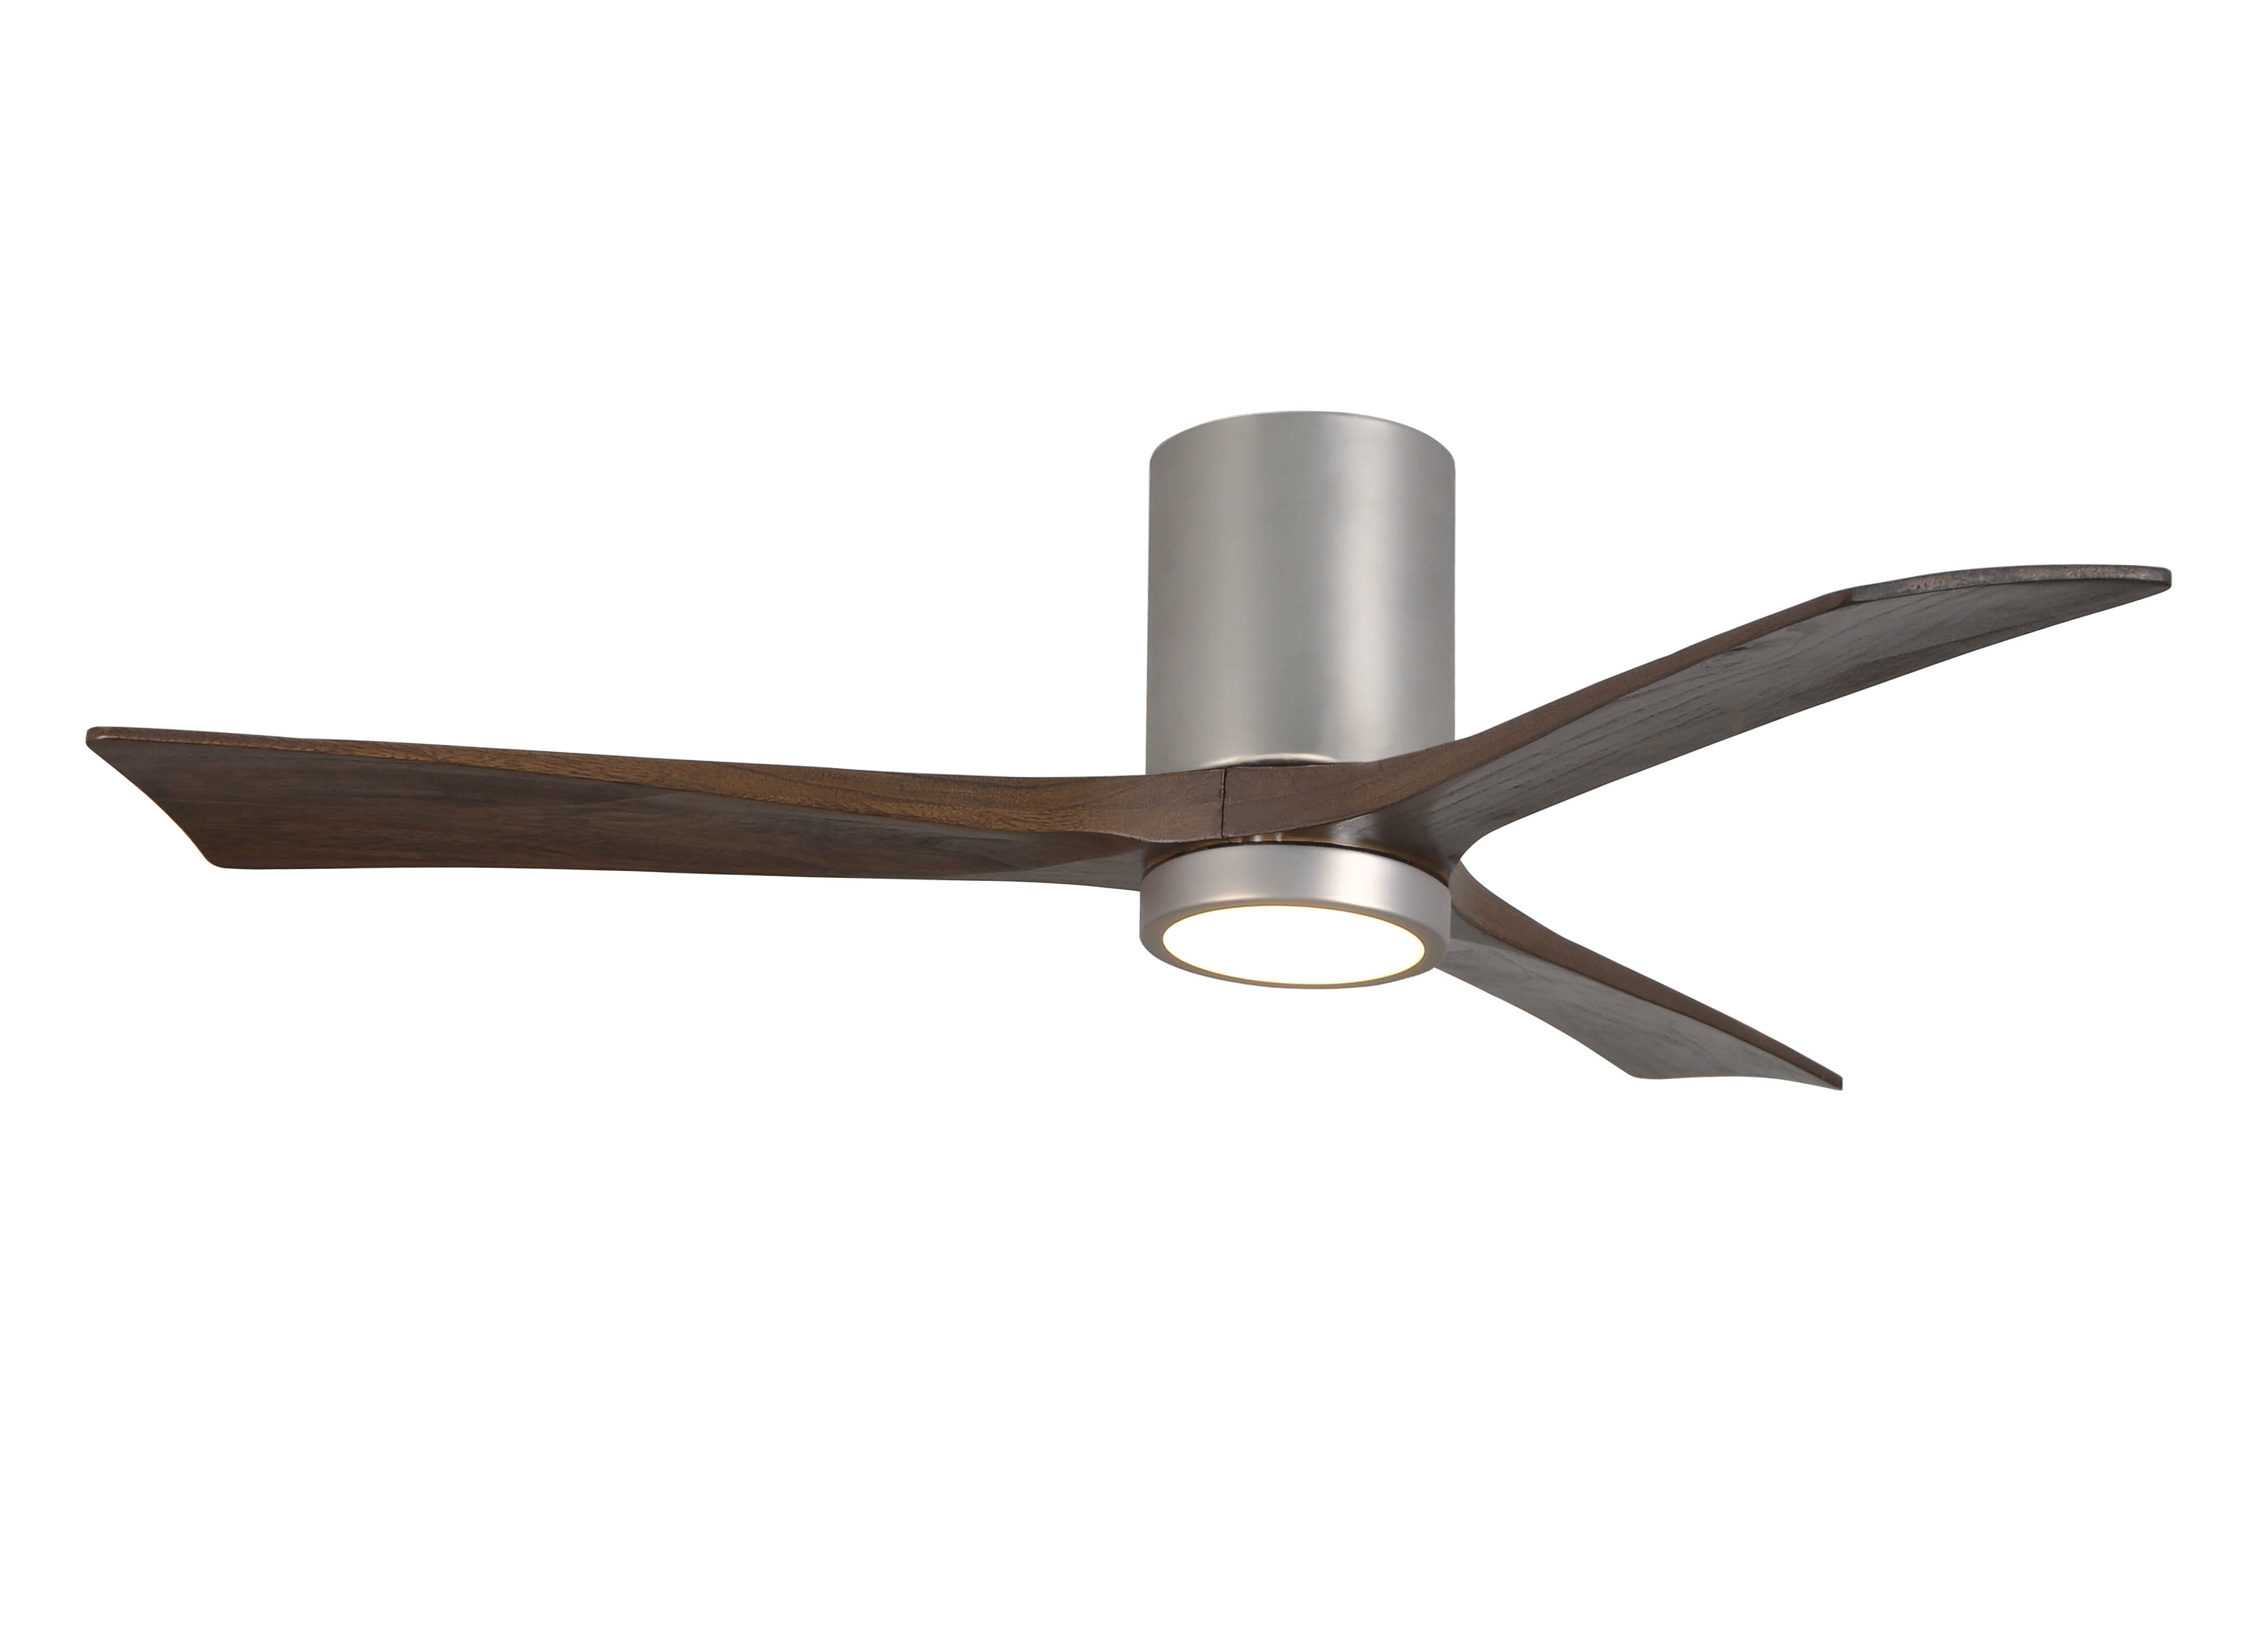 Allmodern Throughout Best And Newest Truesdale 3 Blades Ceiling Fans (View 2 of 20)